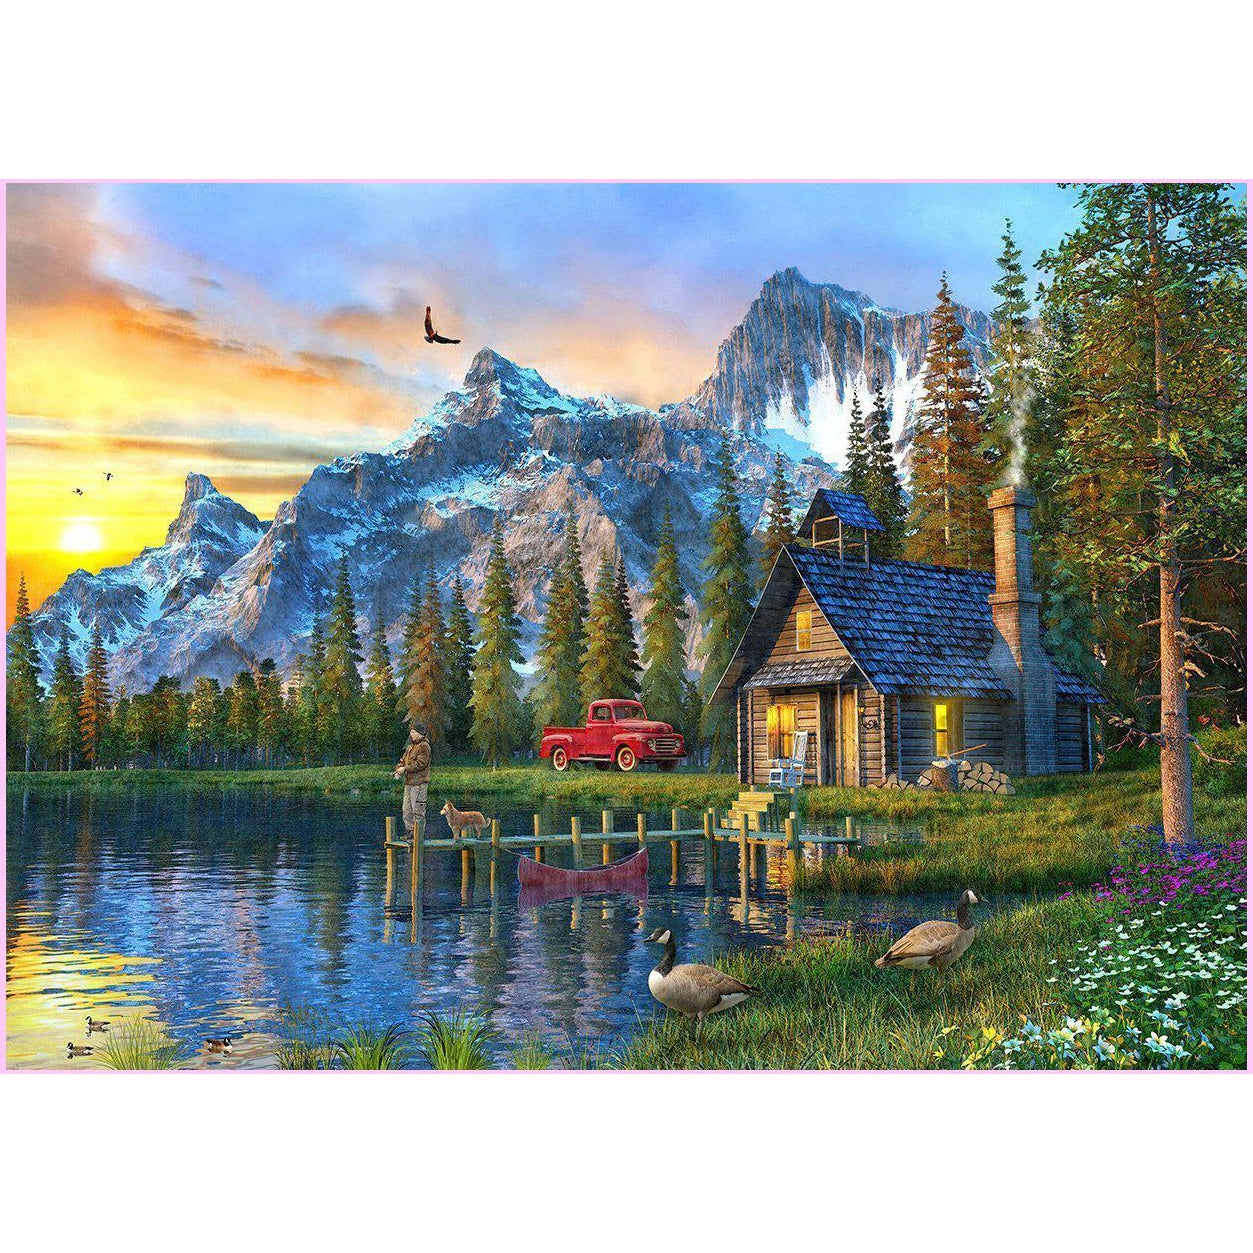 Sunset Log Cabin-Diamond Painting Kit USPS-30x45cm (12x18 in)-Square-Heartful Diamonds